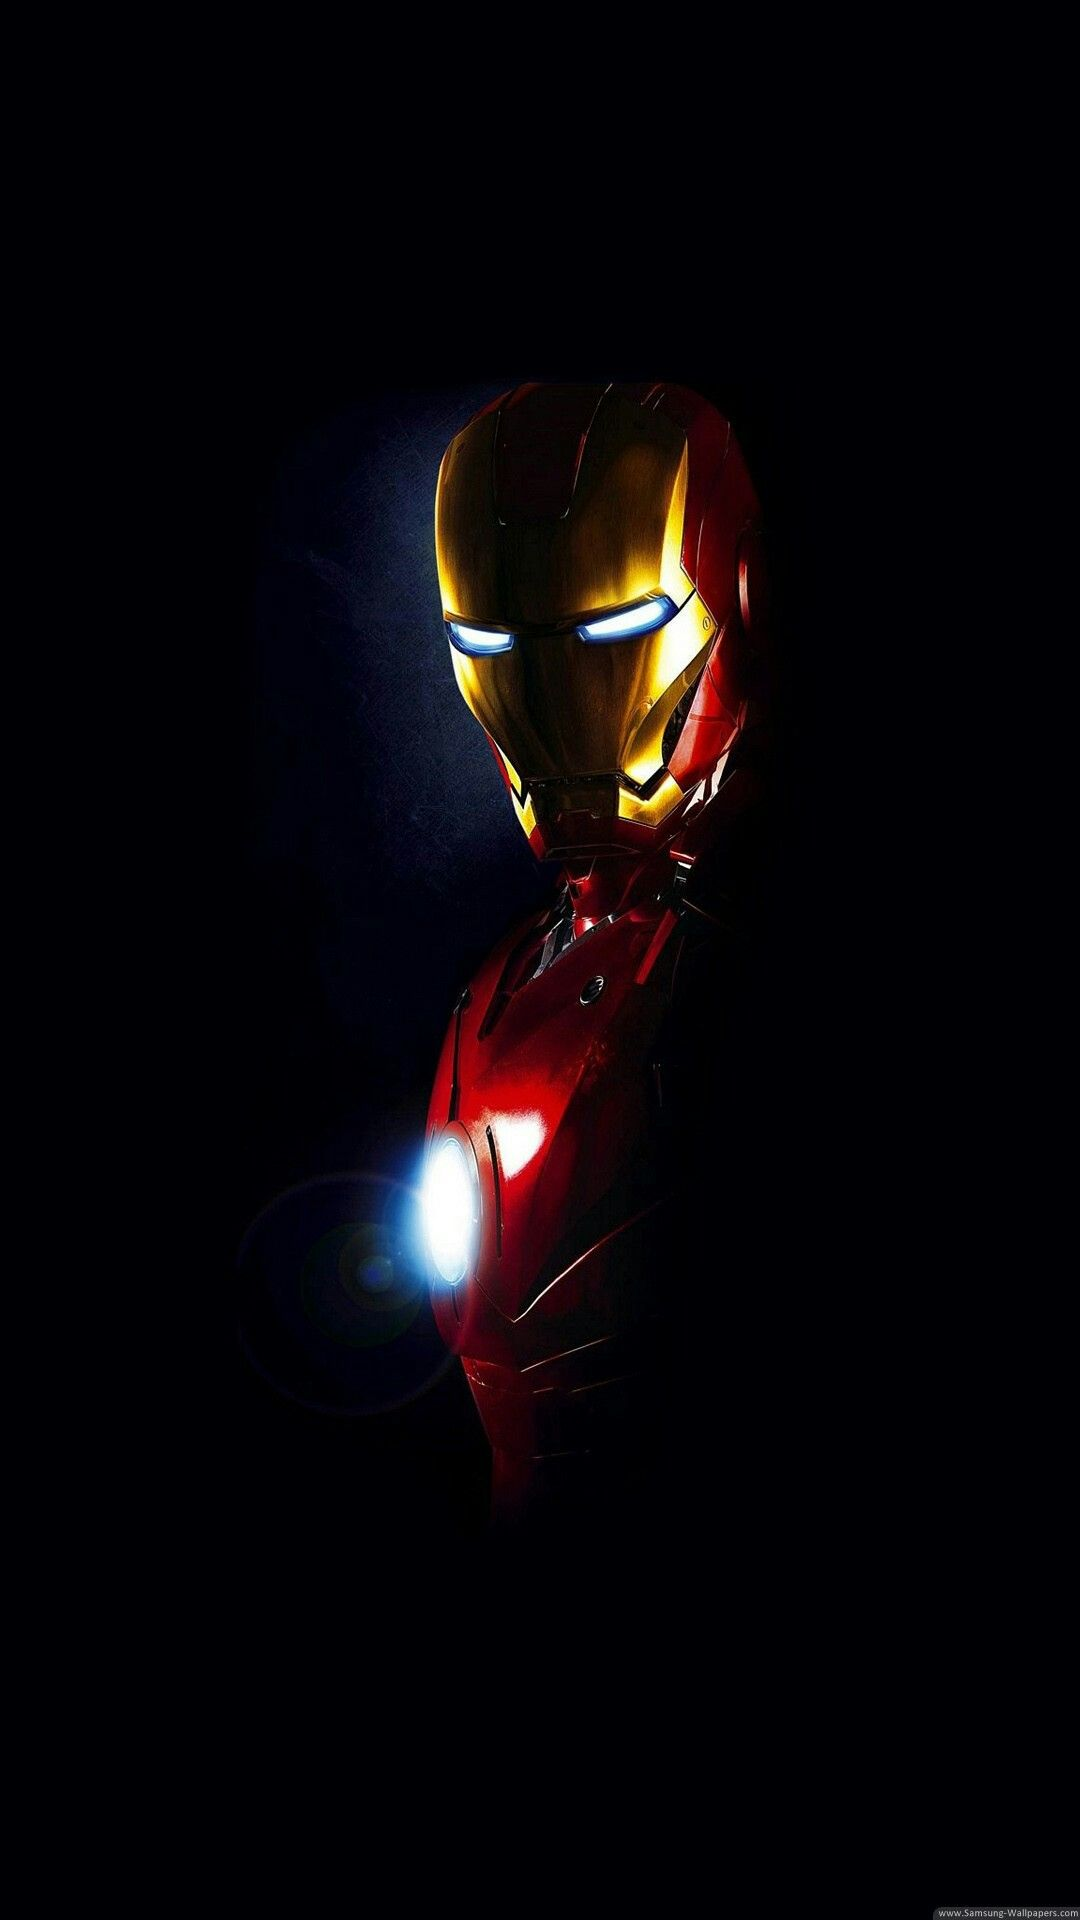 Iron man wallpaper marvel iron man wallpaper iron man - Fondos de pantalla 3d avengers ...